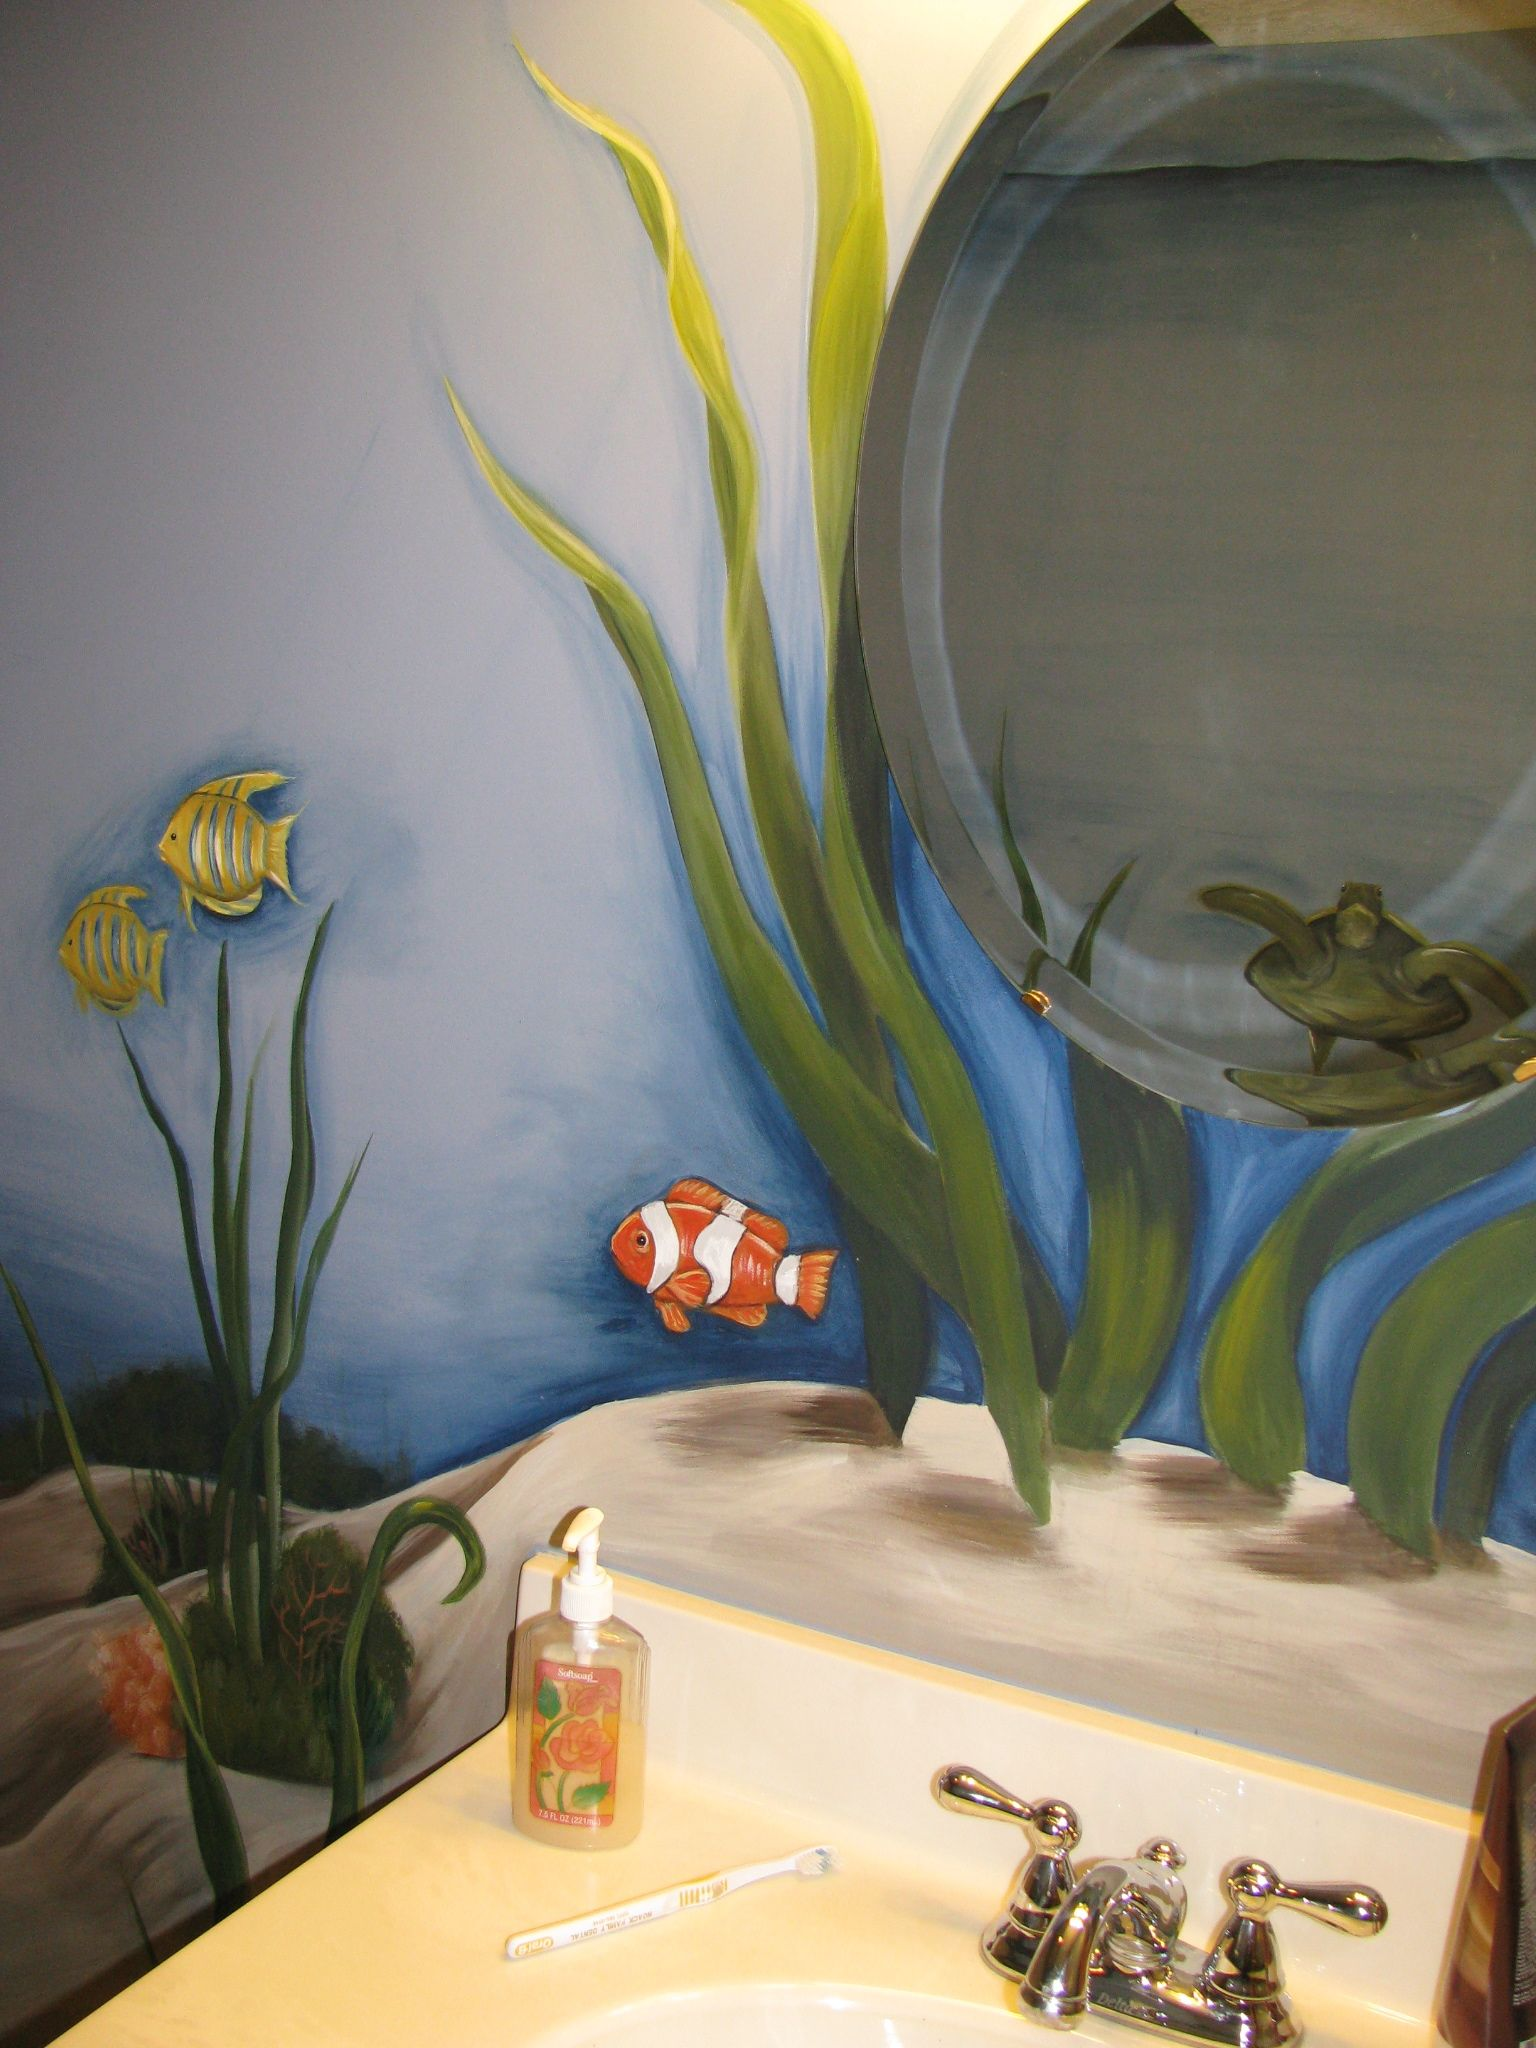 Underwater Bathroom (See the turtle reflection in the mirror)